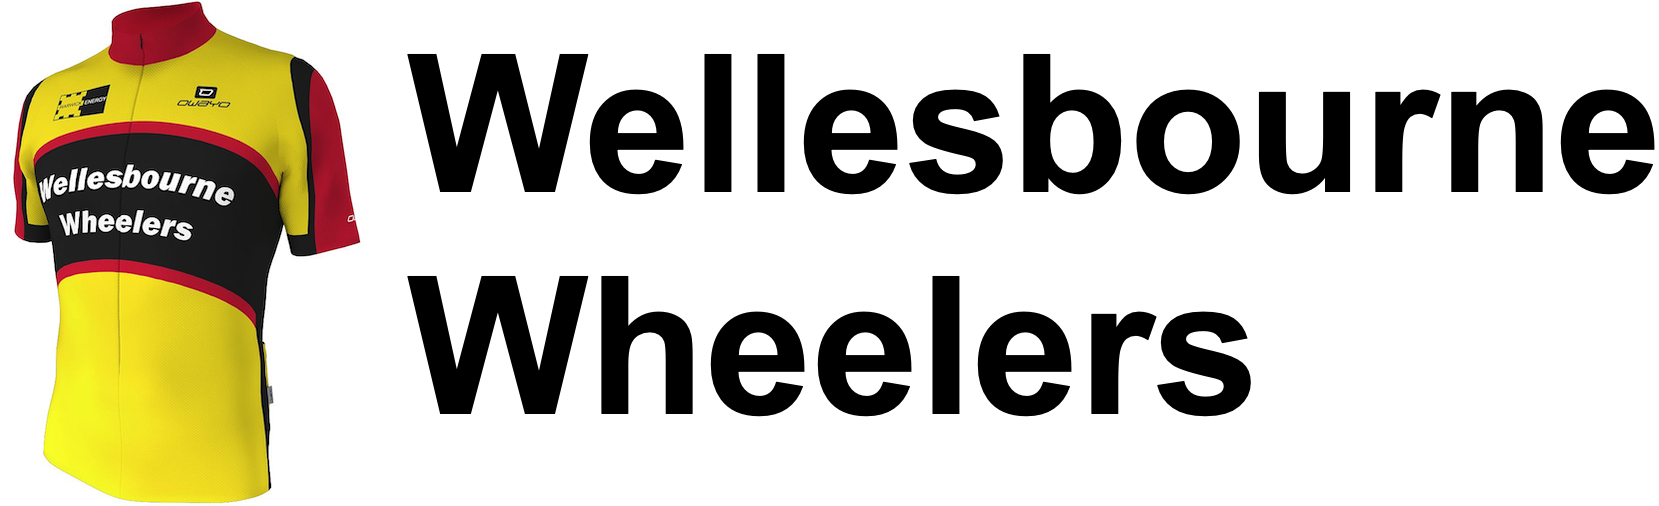 Wellesbourne Wheelers : British Cycling Affiliation No: 1001851